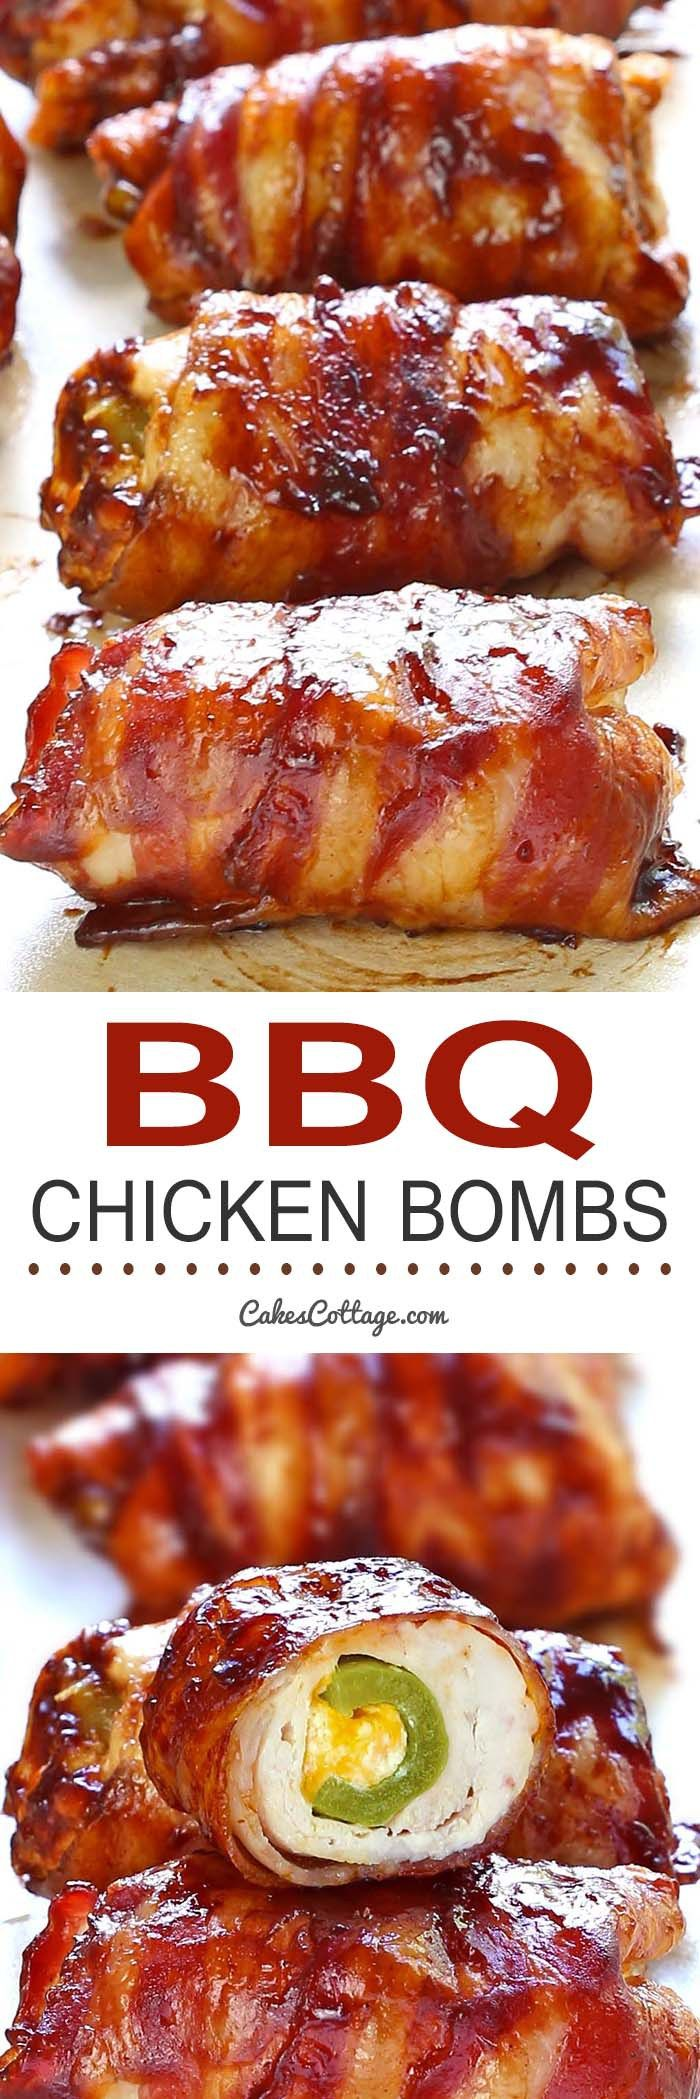 BBQs. I mean, barbecues. One of summer's most essential meals. We all love 'em and need 'em. We all inhale roughly a ton of smokin' hot chicken/meat/veggies (sometimes skewered all together) during…